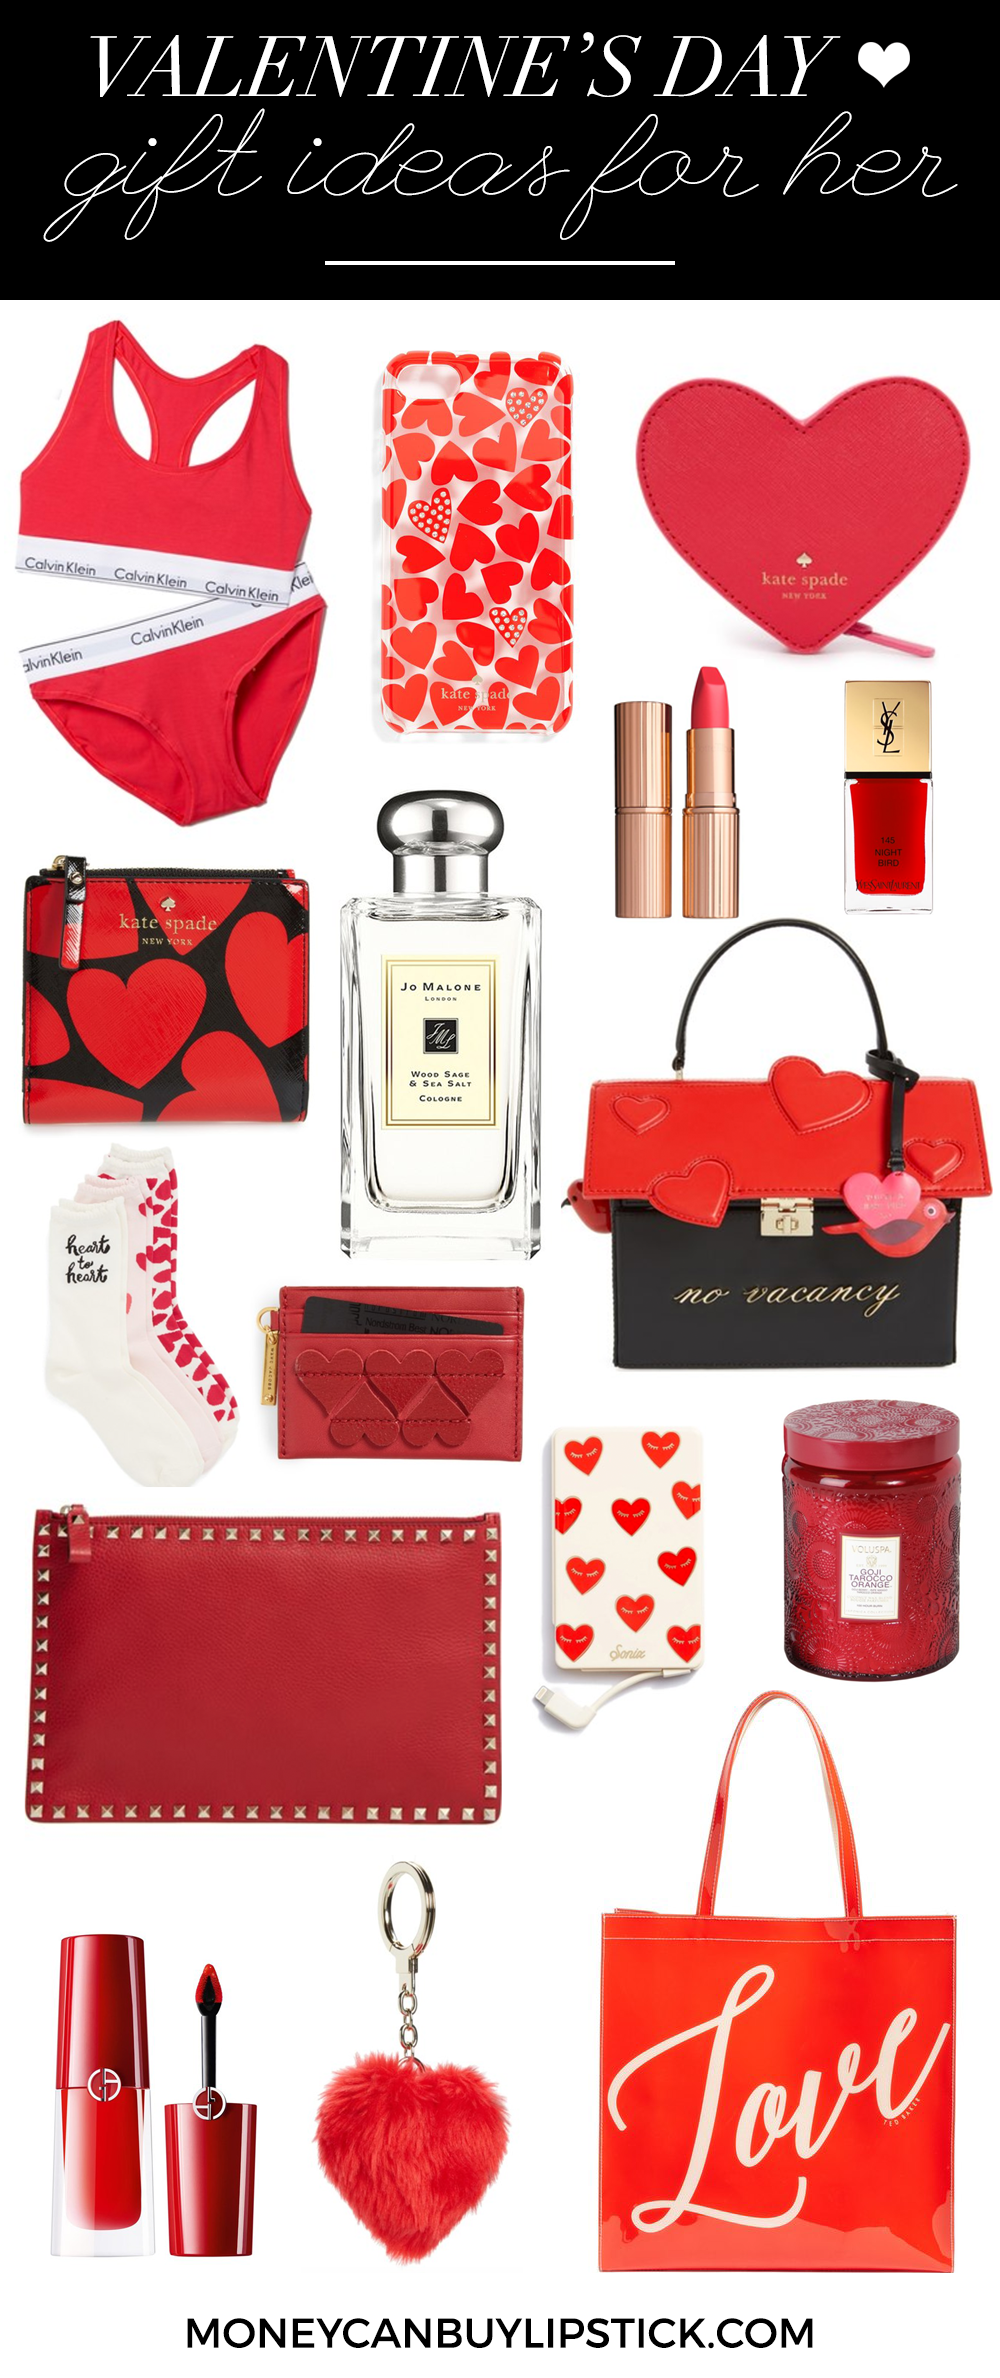 Gifts For Her Valentine S Day Teresa Caruso Valentines Day Gifts For Friends Valentine Gift For Wife Friends Valentines